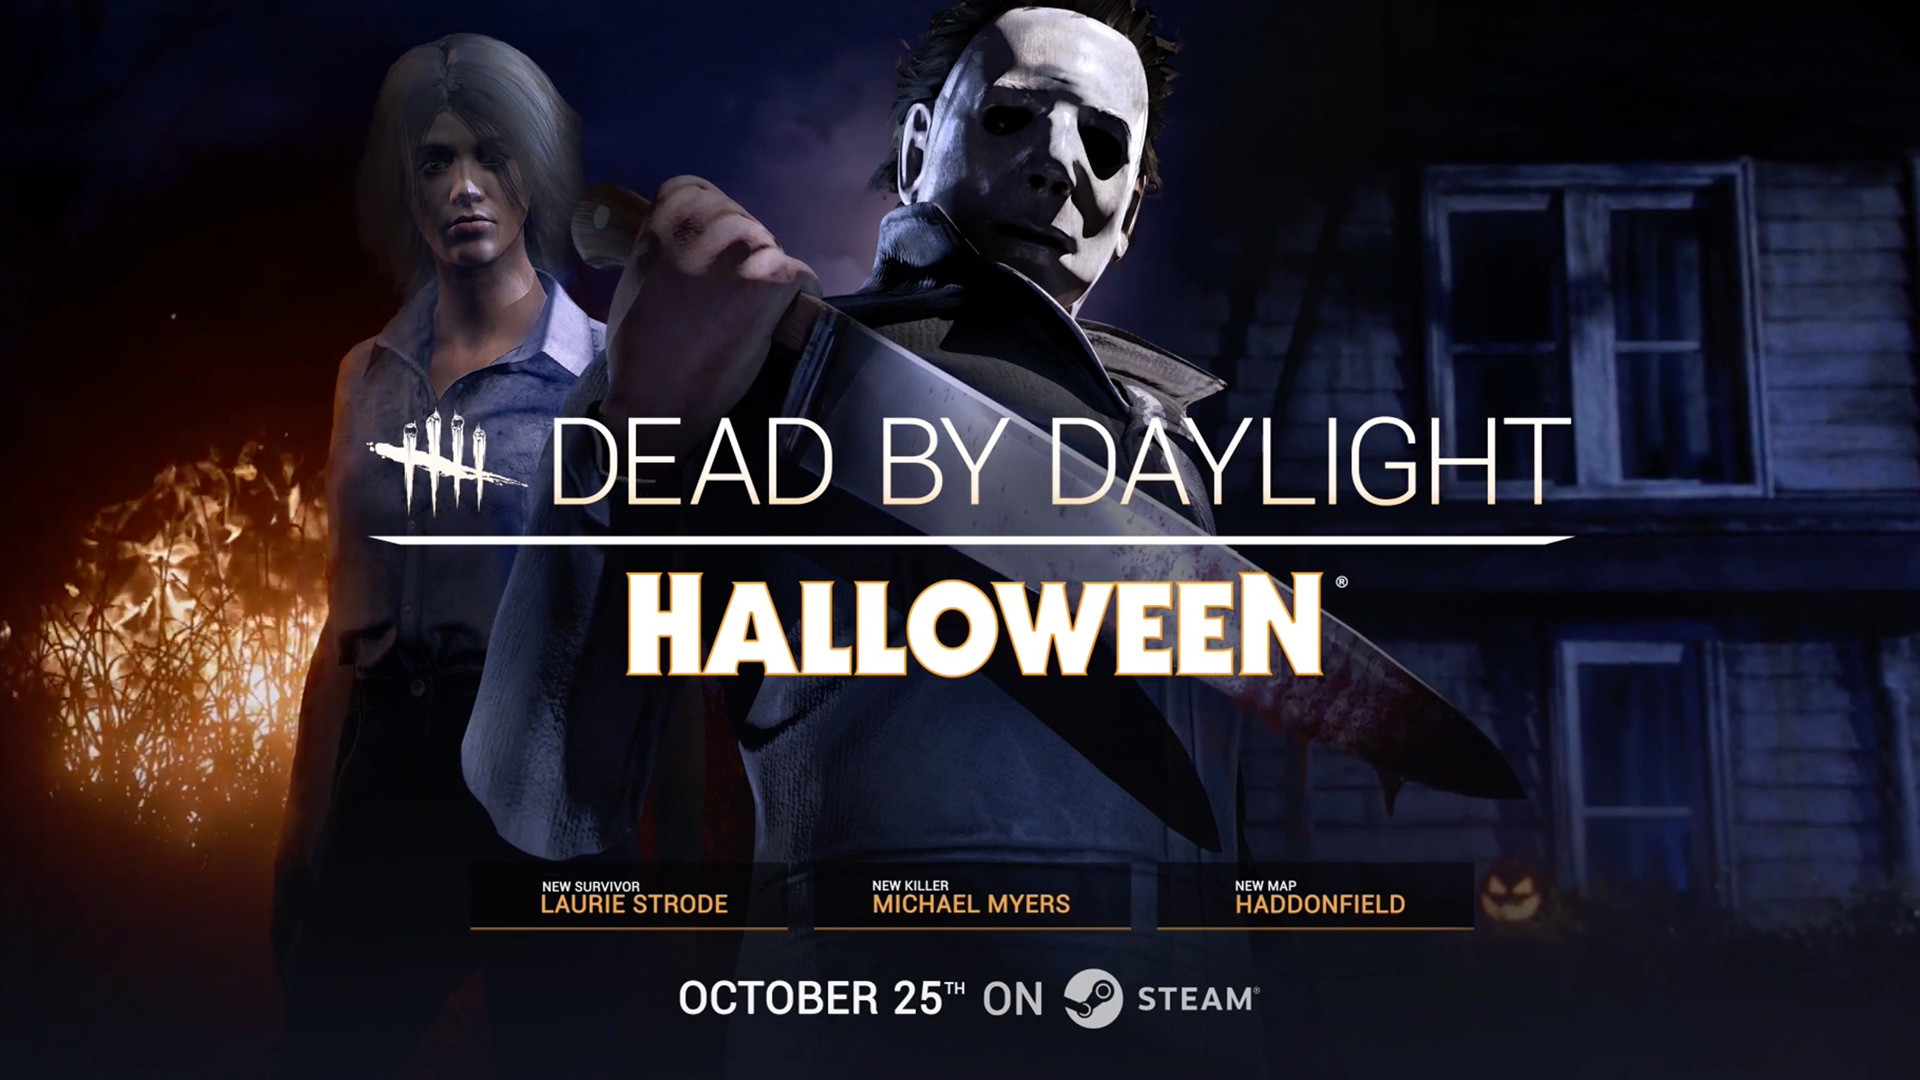 Dead by Daylight's Halloween update goes live today